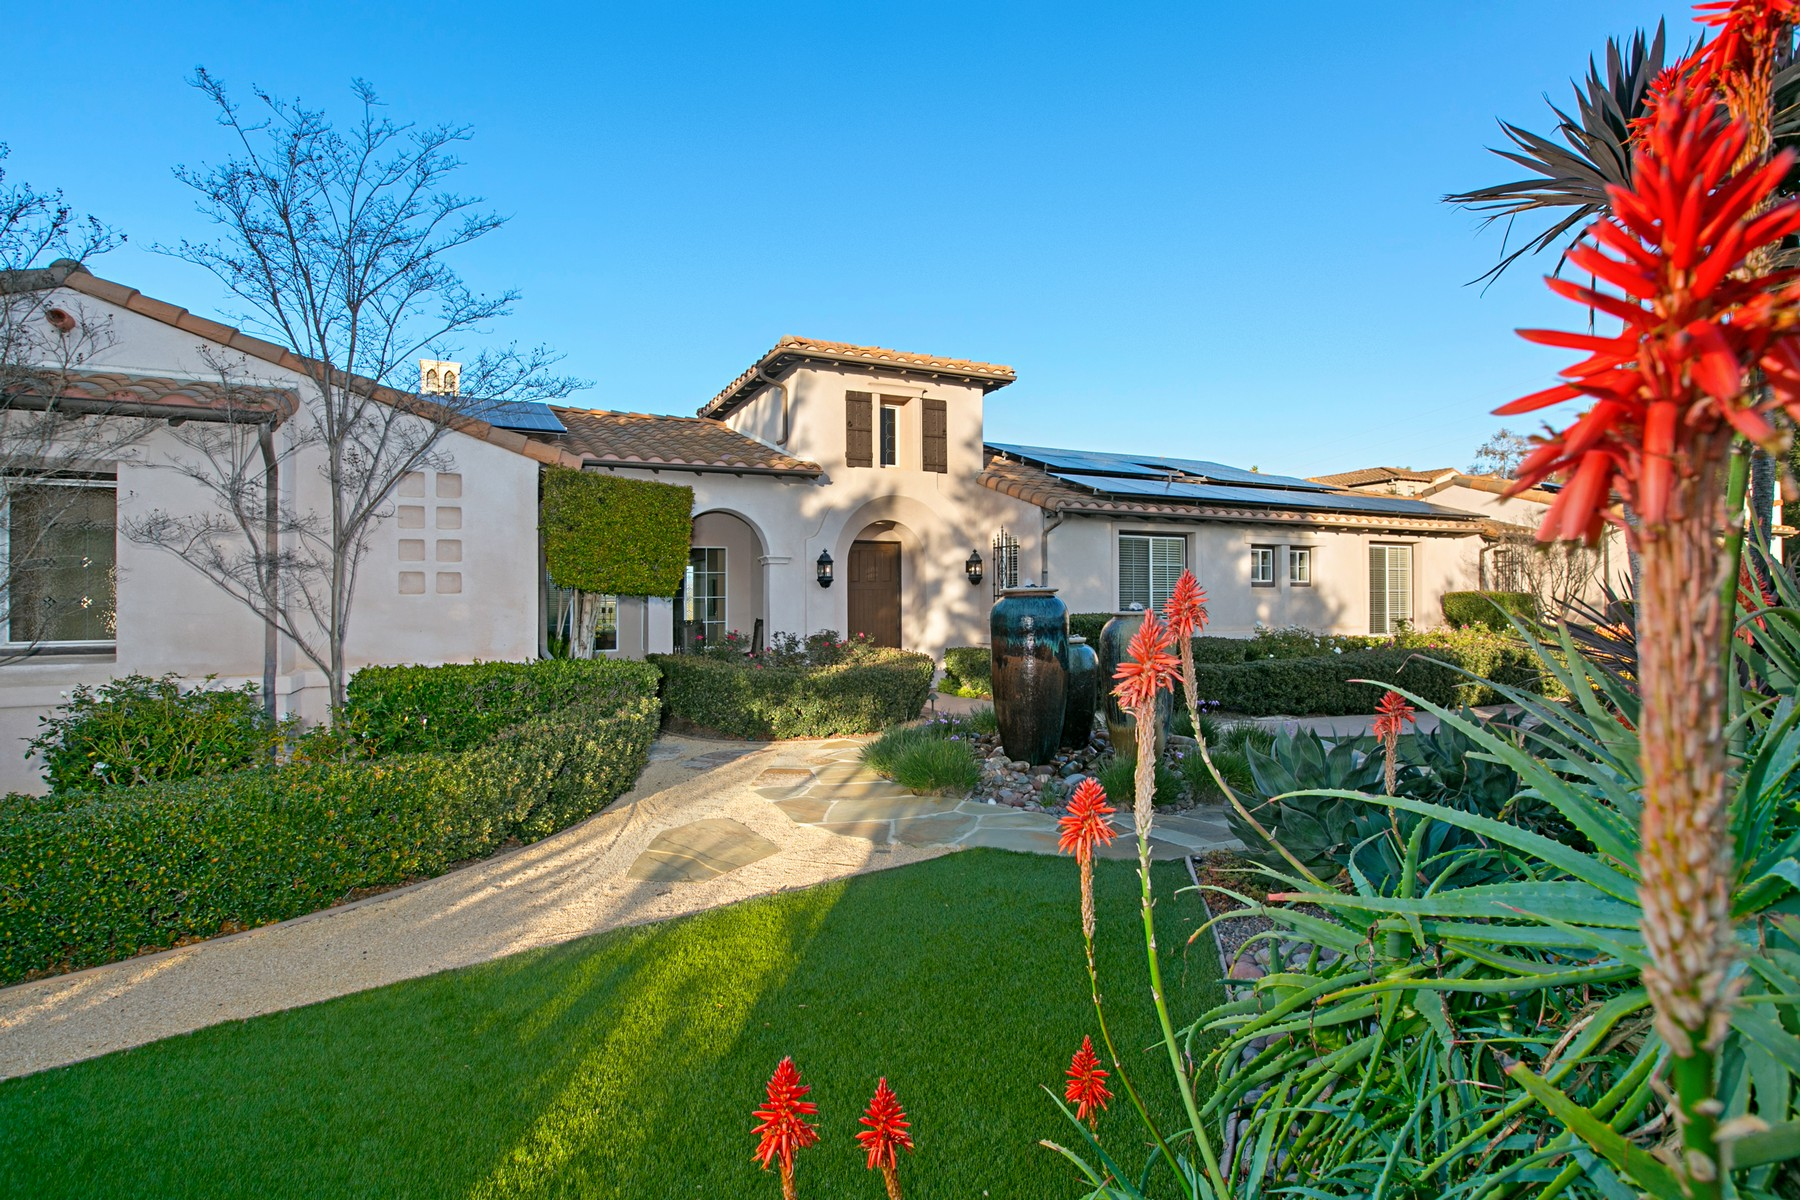 Single Family Home for Active at 13650 Overland Pass 13650 Overland Pass Poway, California 92064 United States